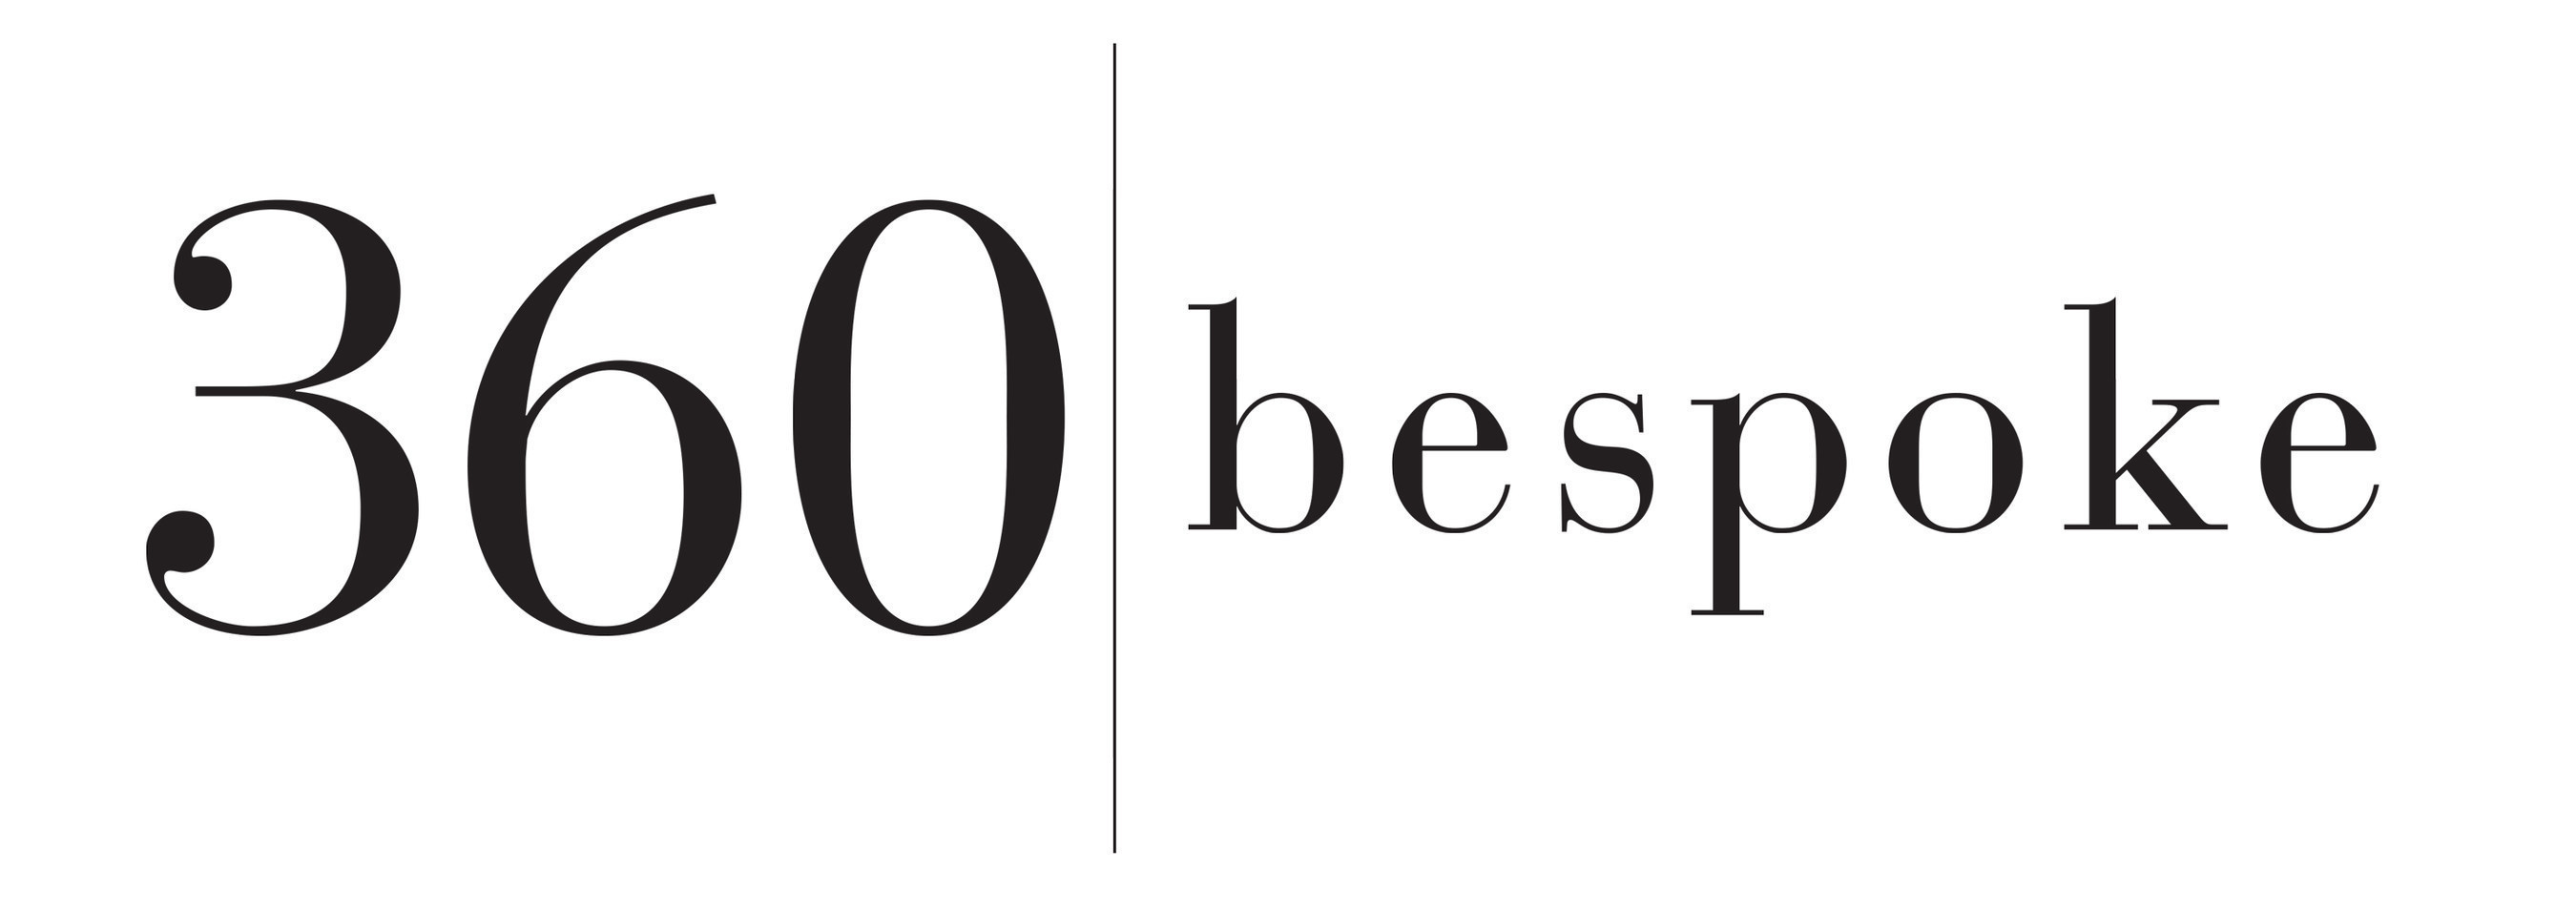 Boutique Media Agency 360bespoke Celebrates October Launch